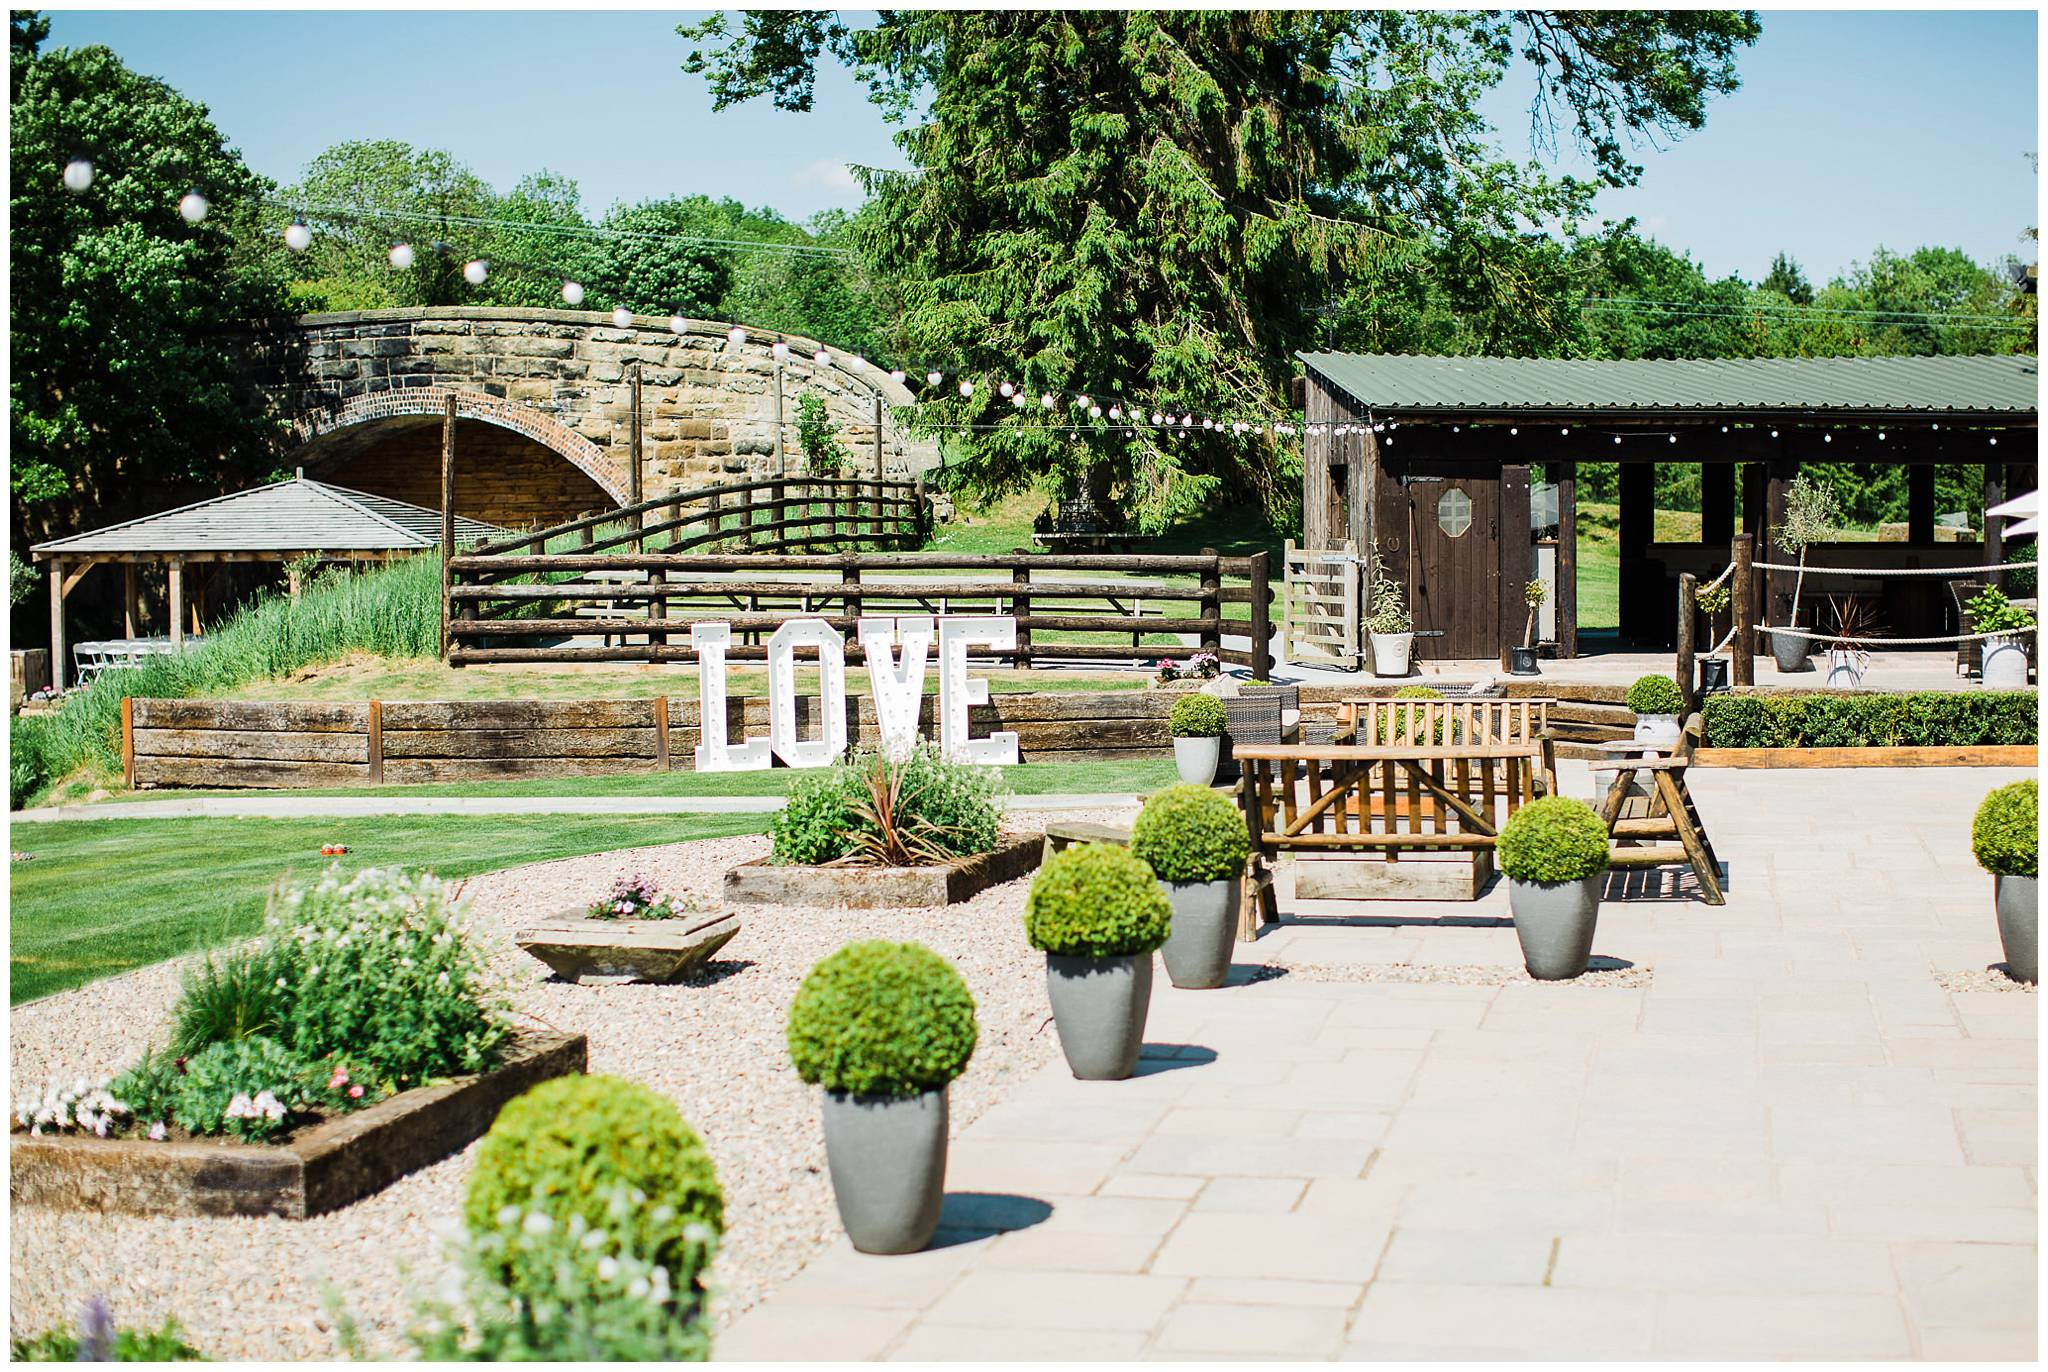 patio area and gardens of tower hill barns. Large light up 'LOVE' letters in the background